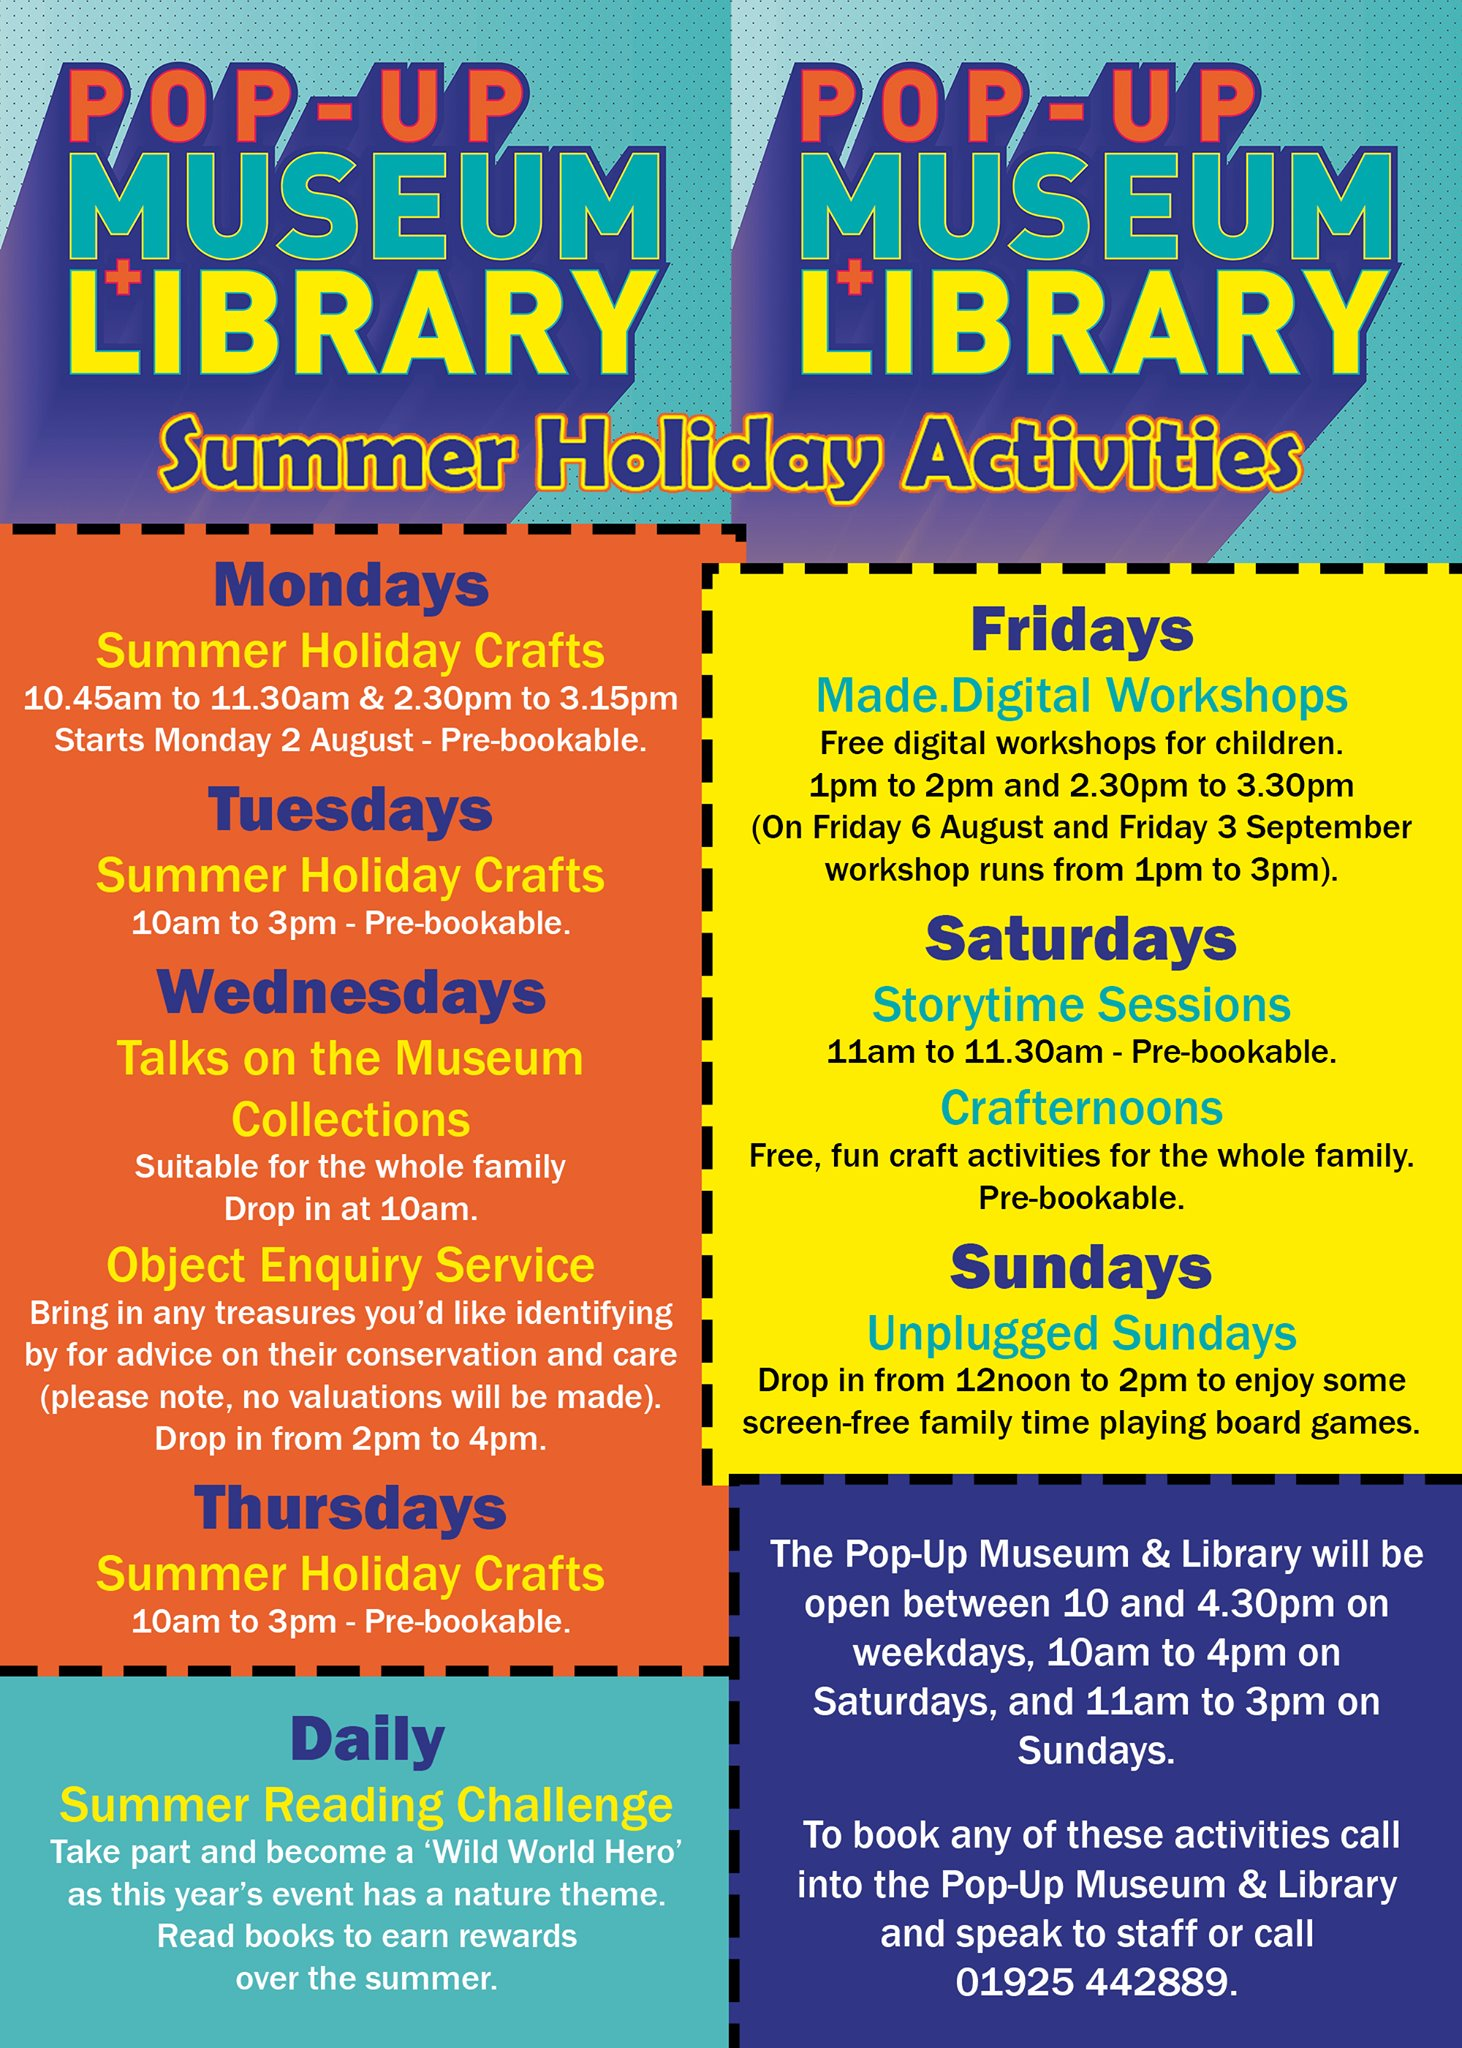 Pop-Up Museum & Library unveils FREE Summer Activities